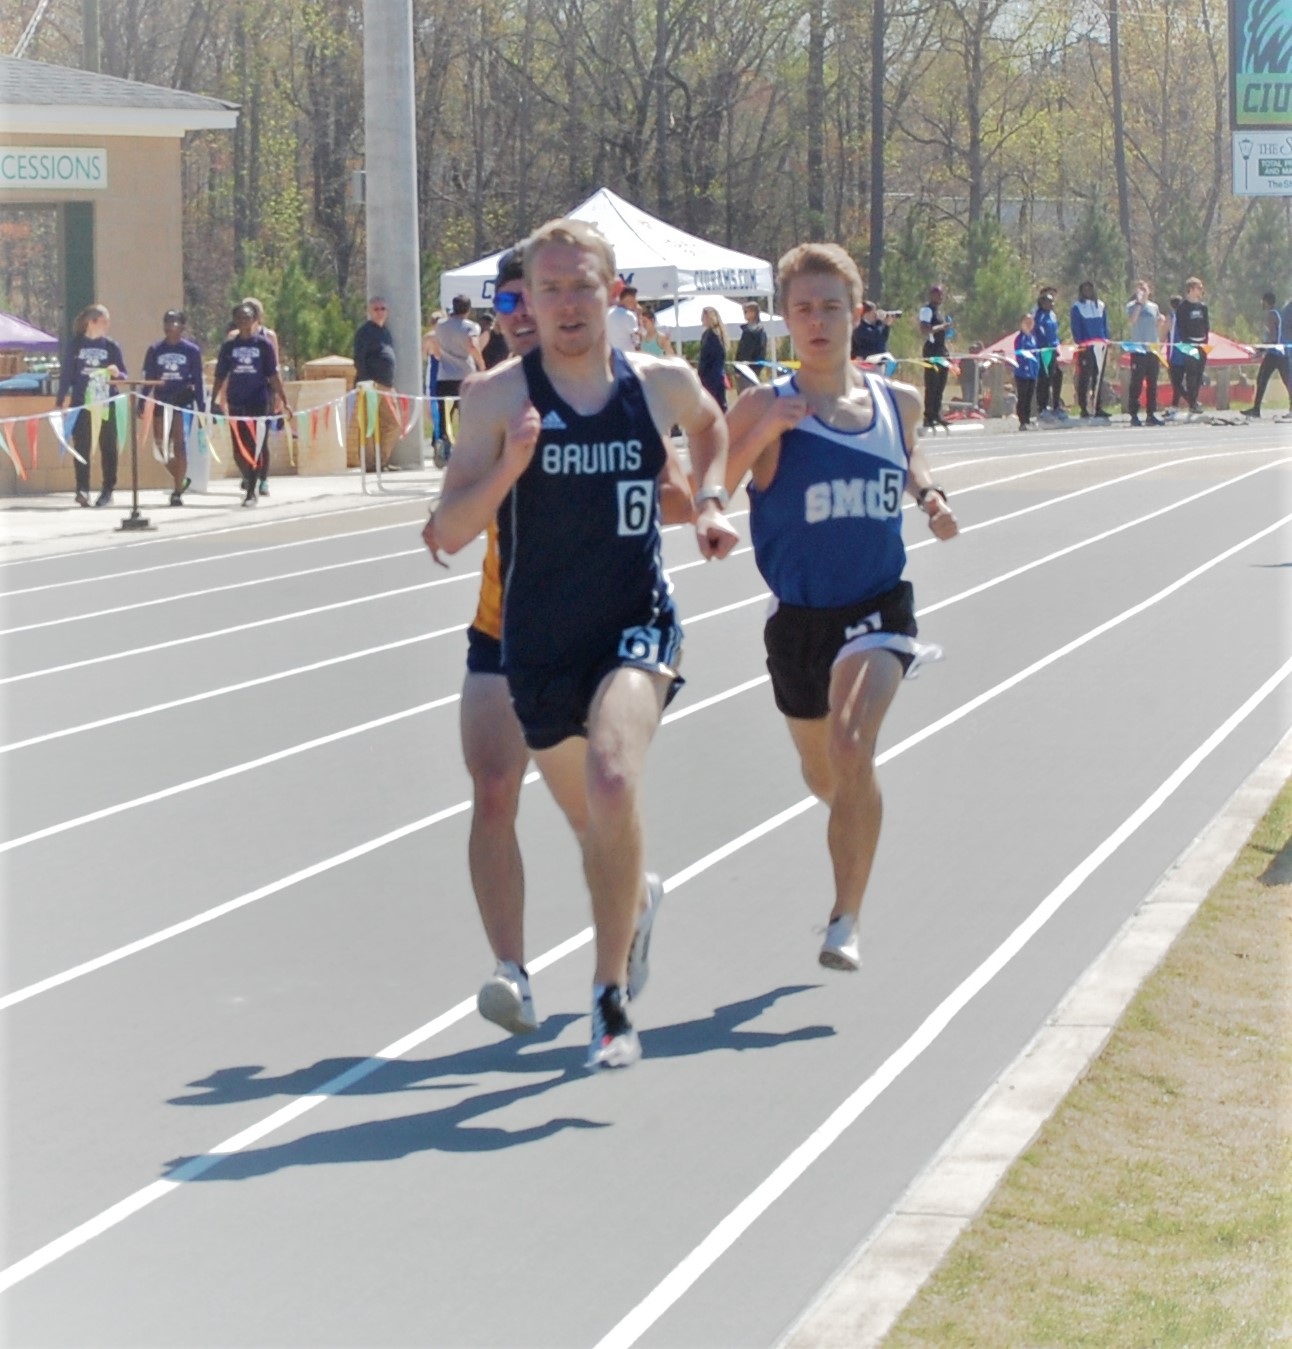 SMC Track and Field competes at CIU Invitational